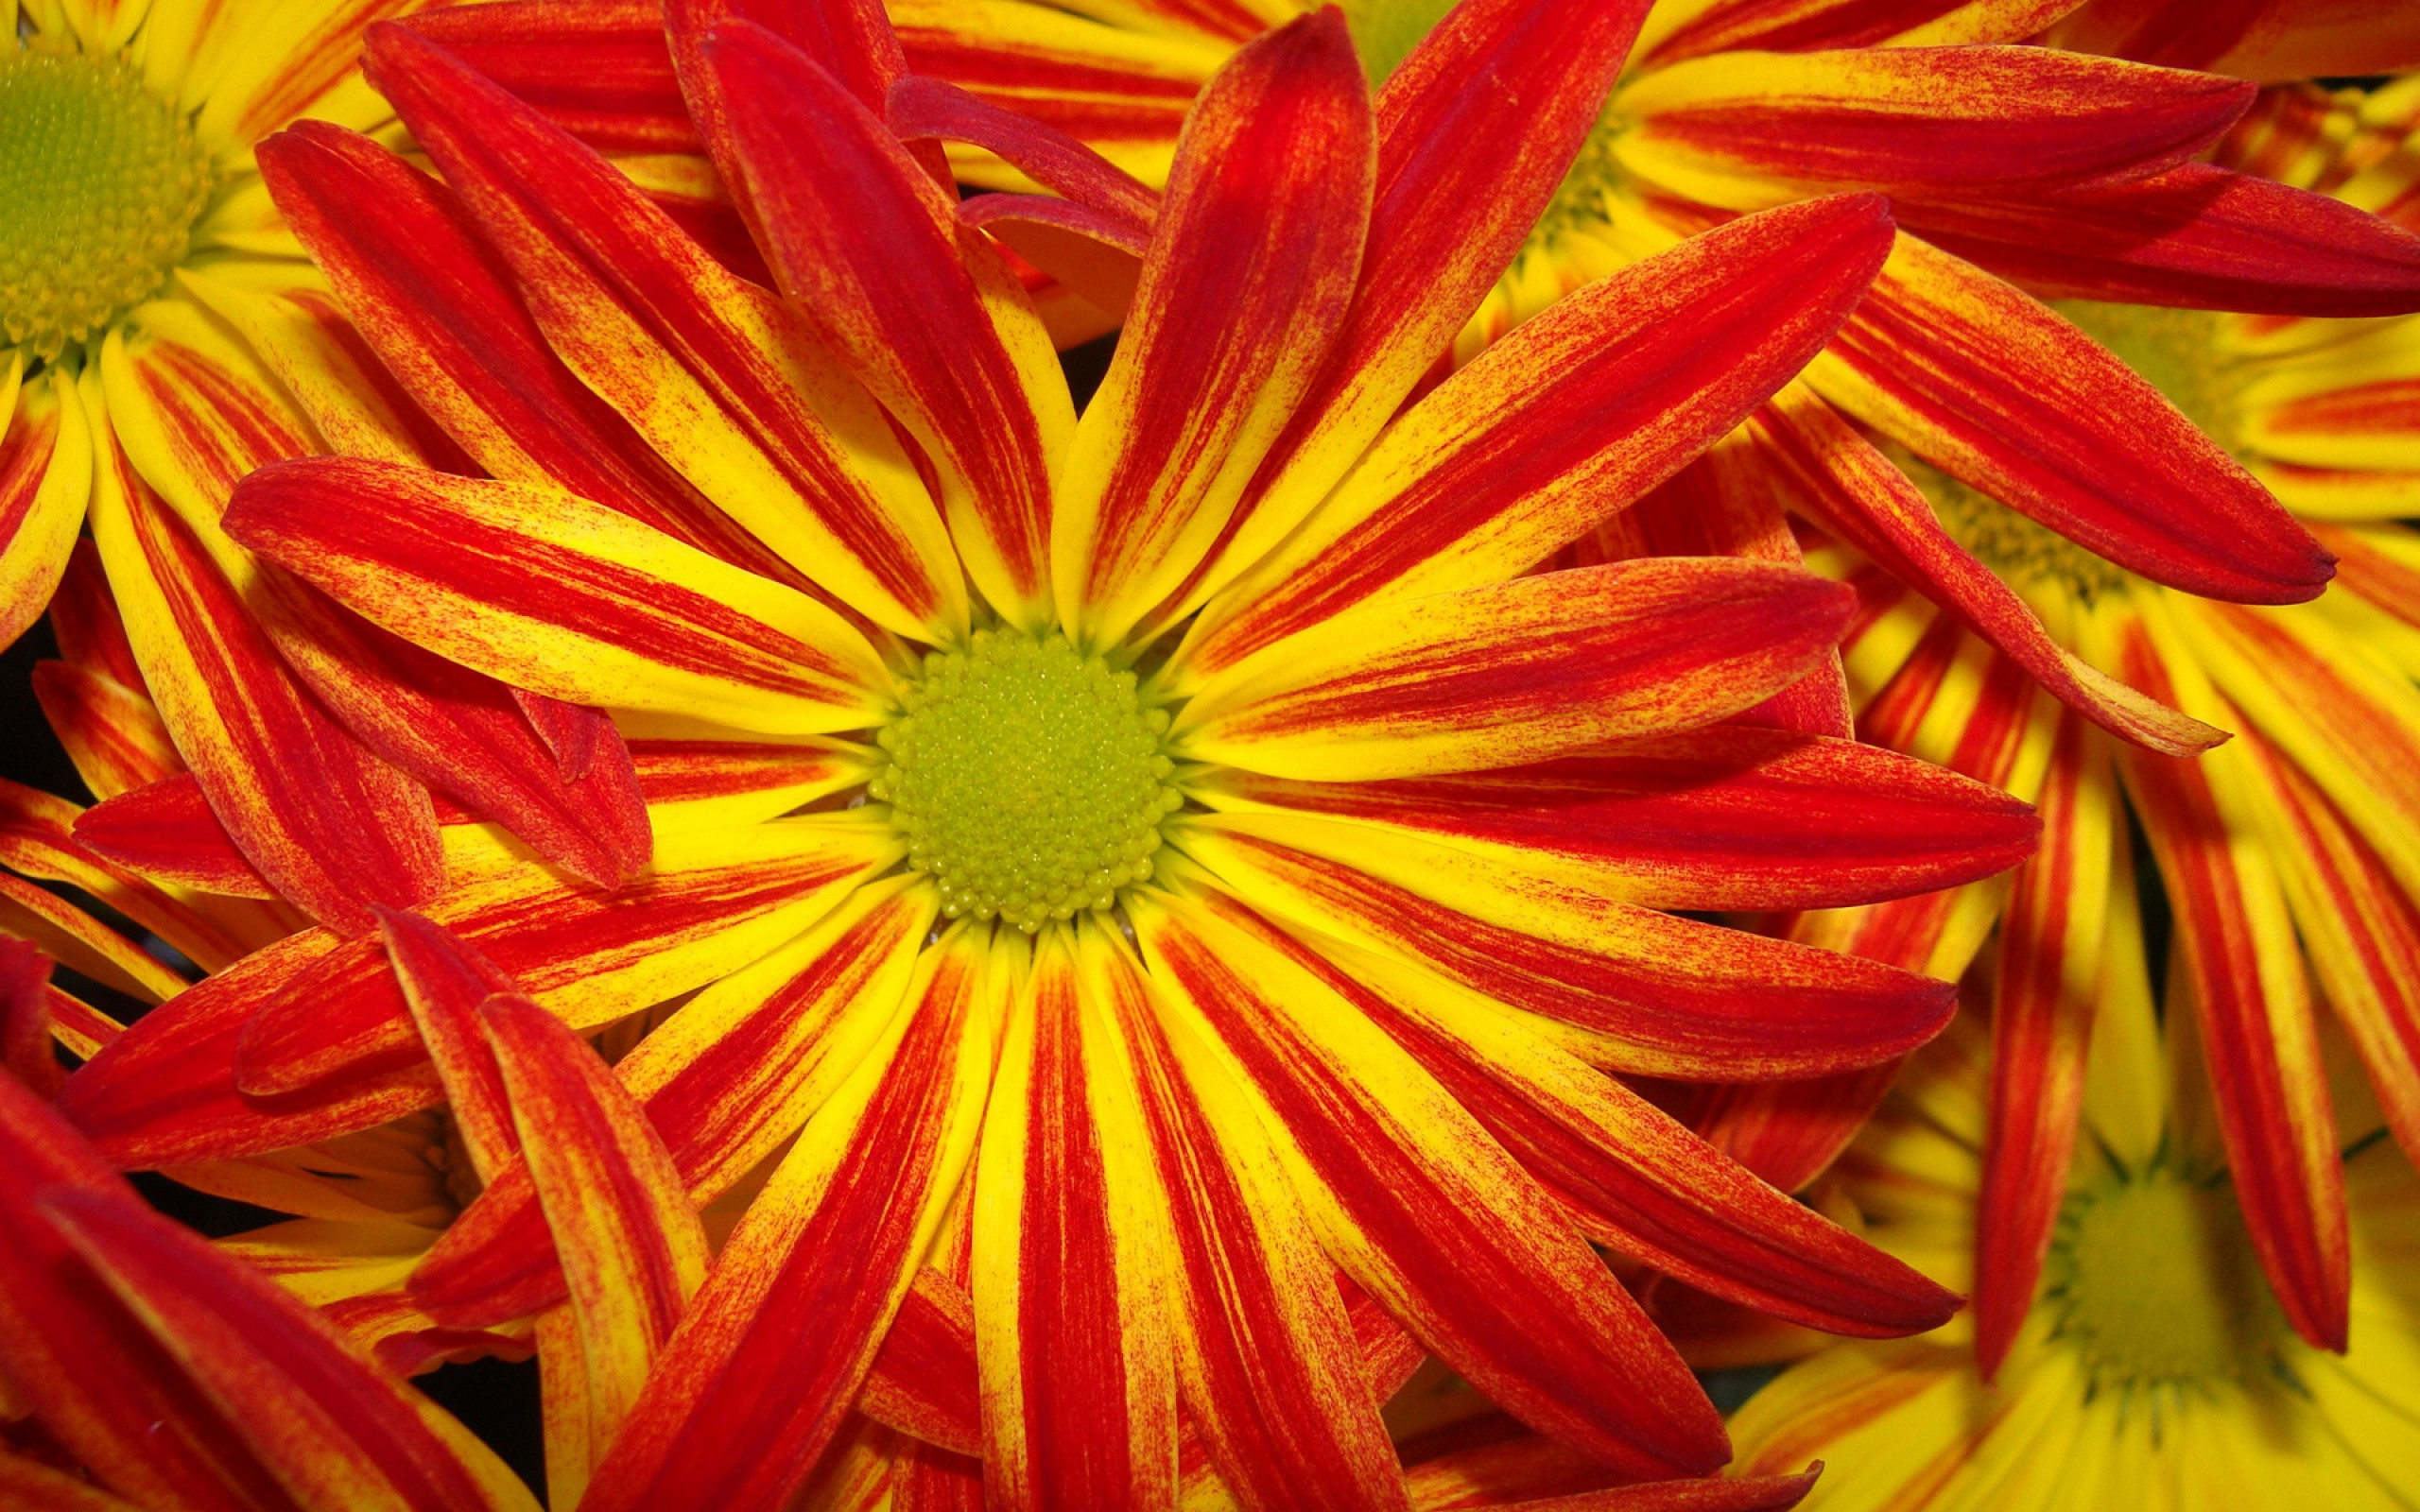 Bright Red And Yellow Daisies Hd Wallpaper Background Image